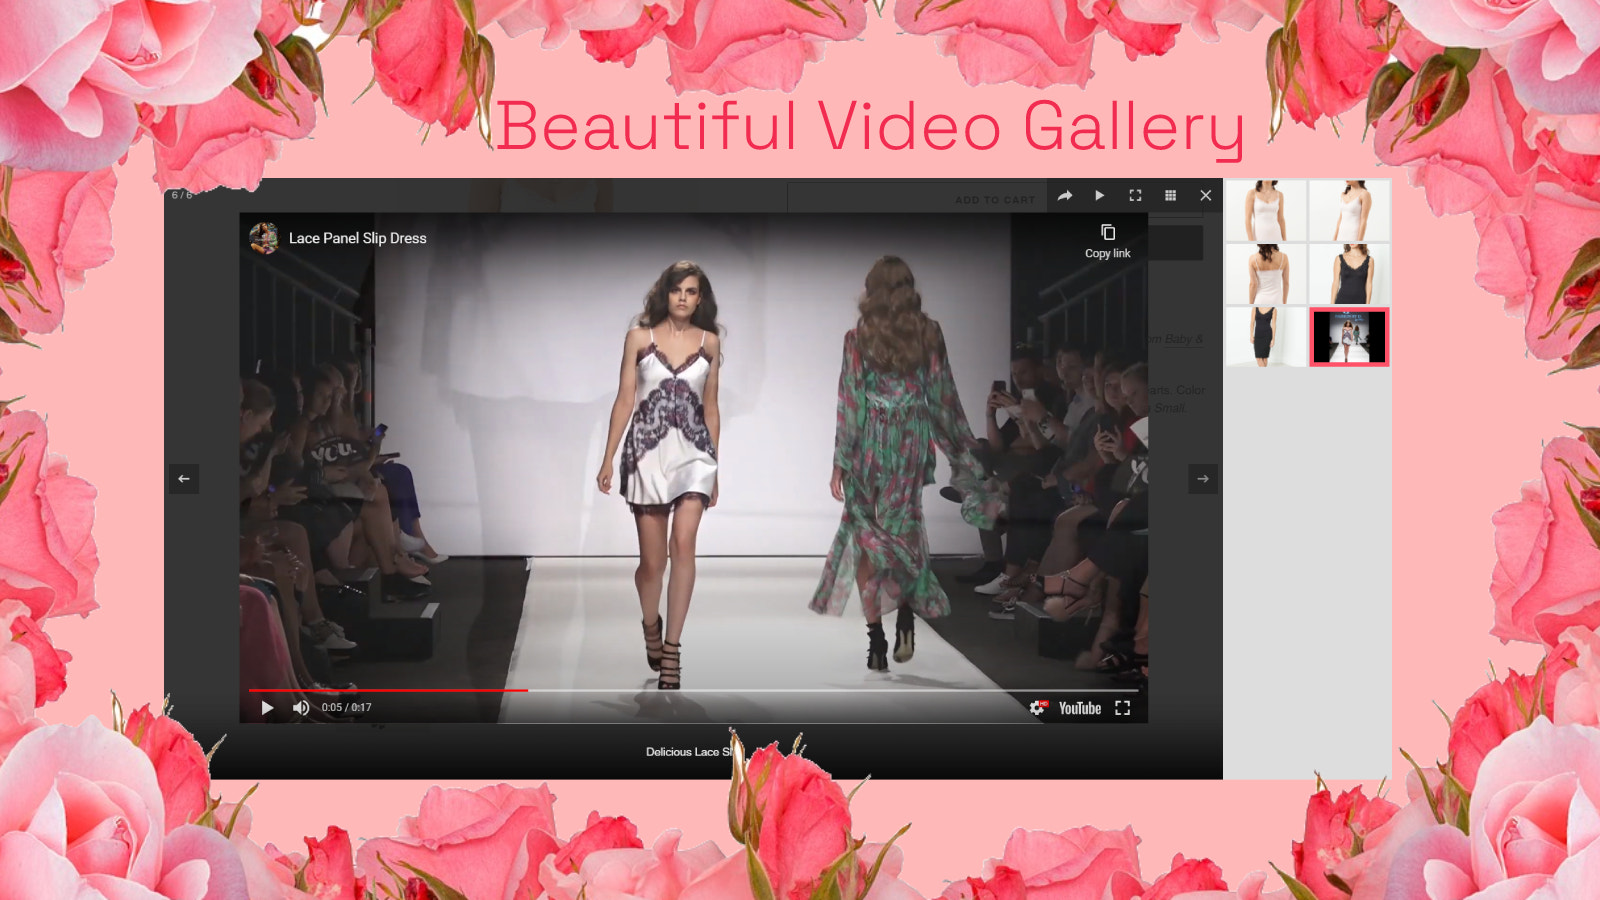 Product video gallery, pop up product, youtube video